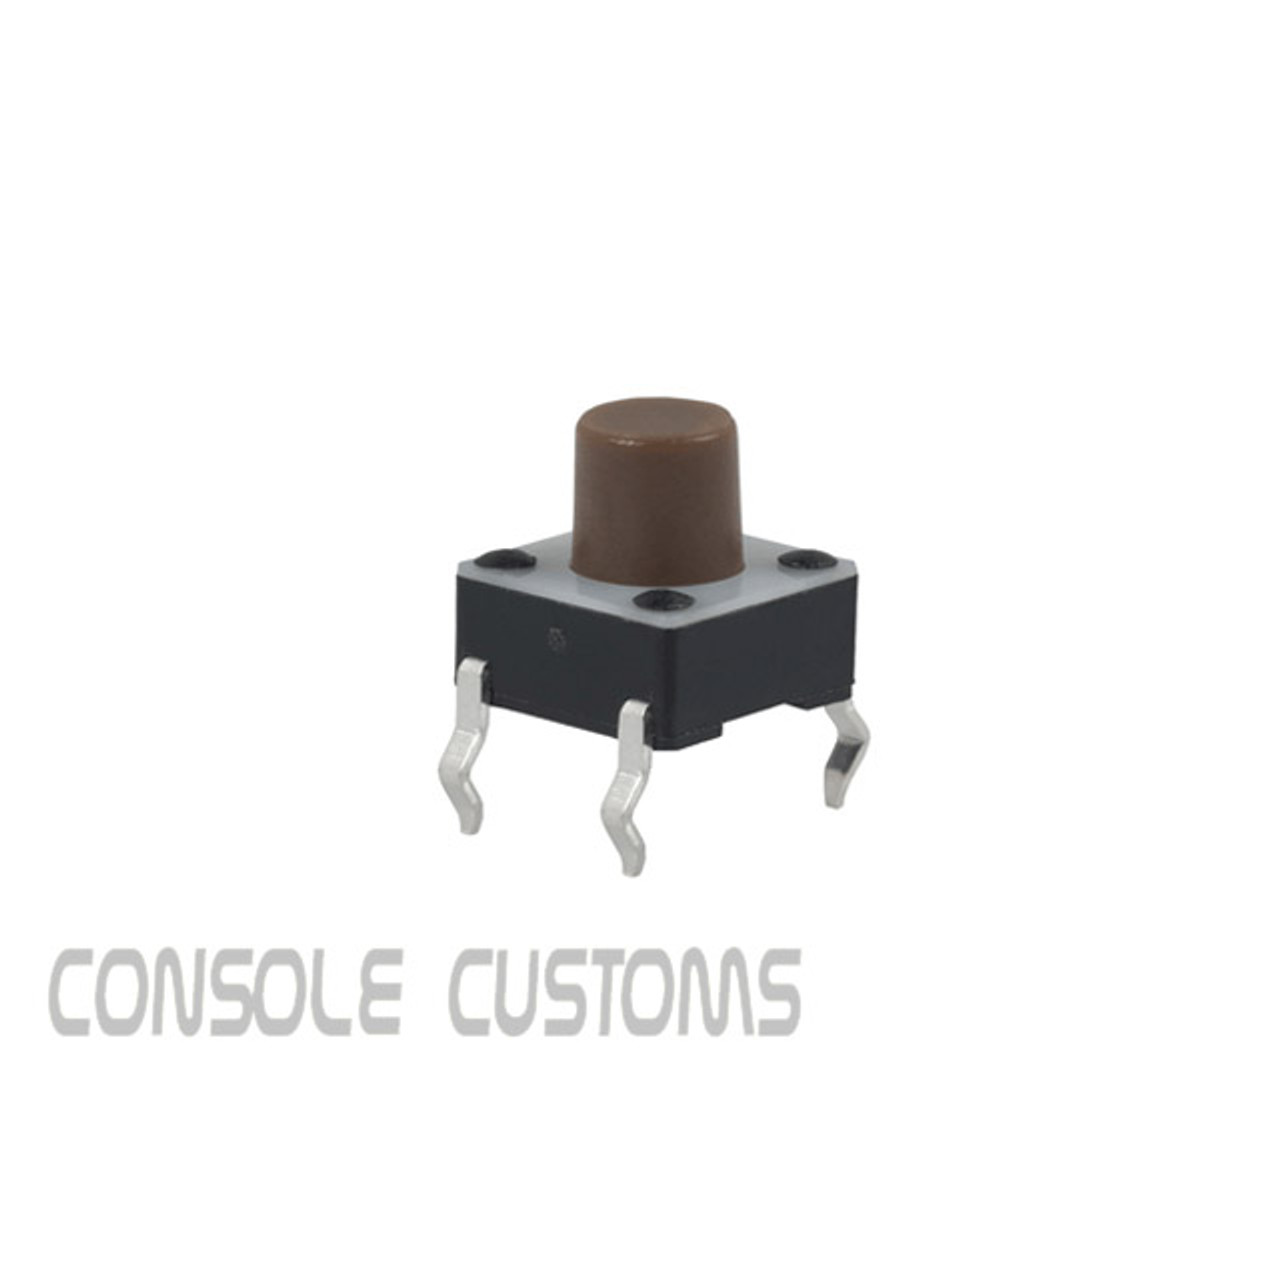 6x6x7mm Tactile switch (brown stem)